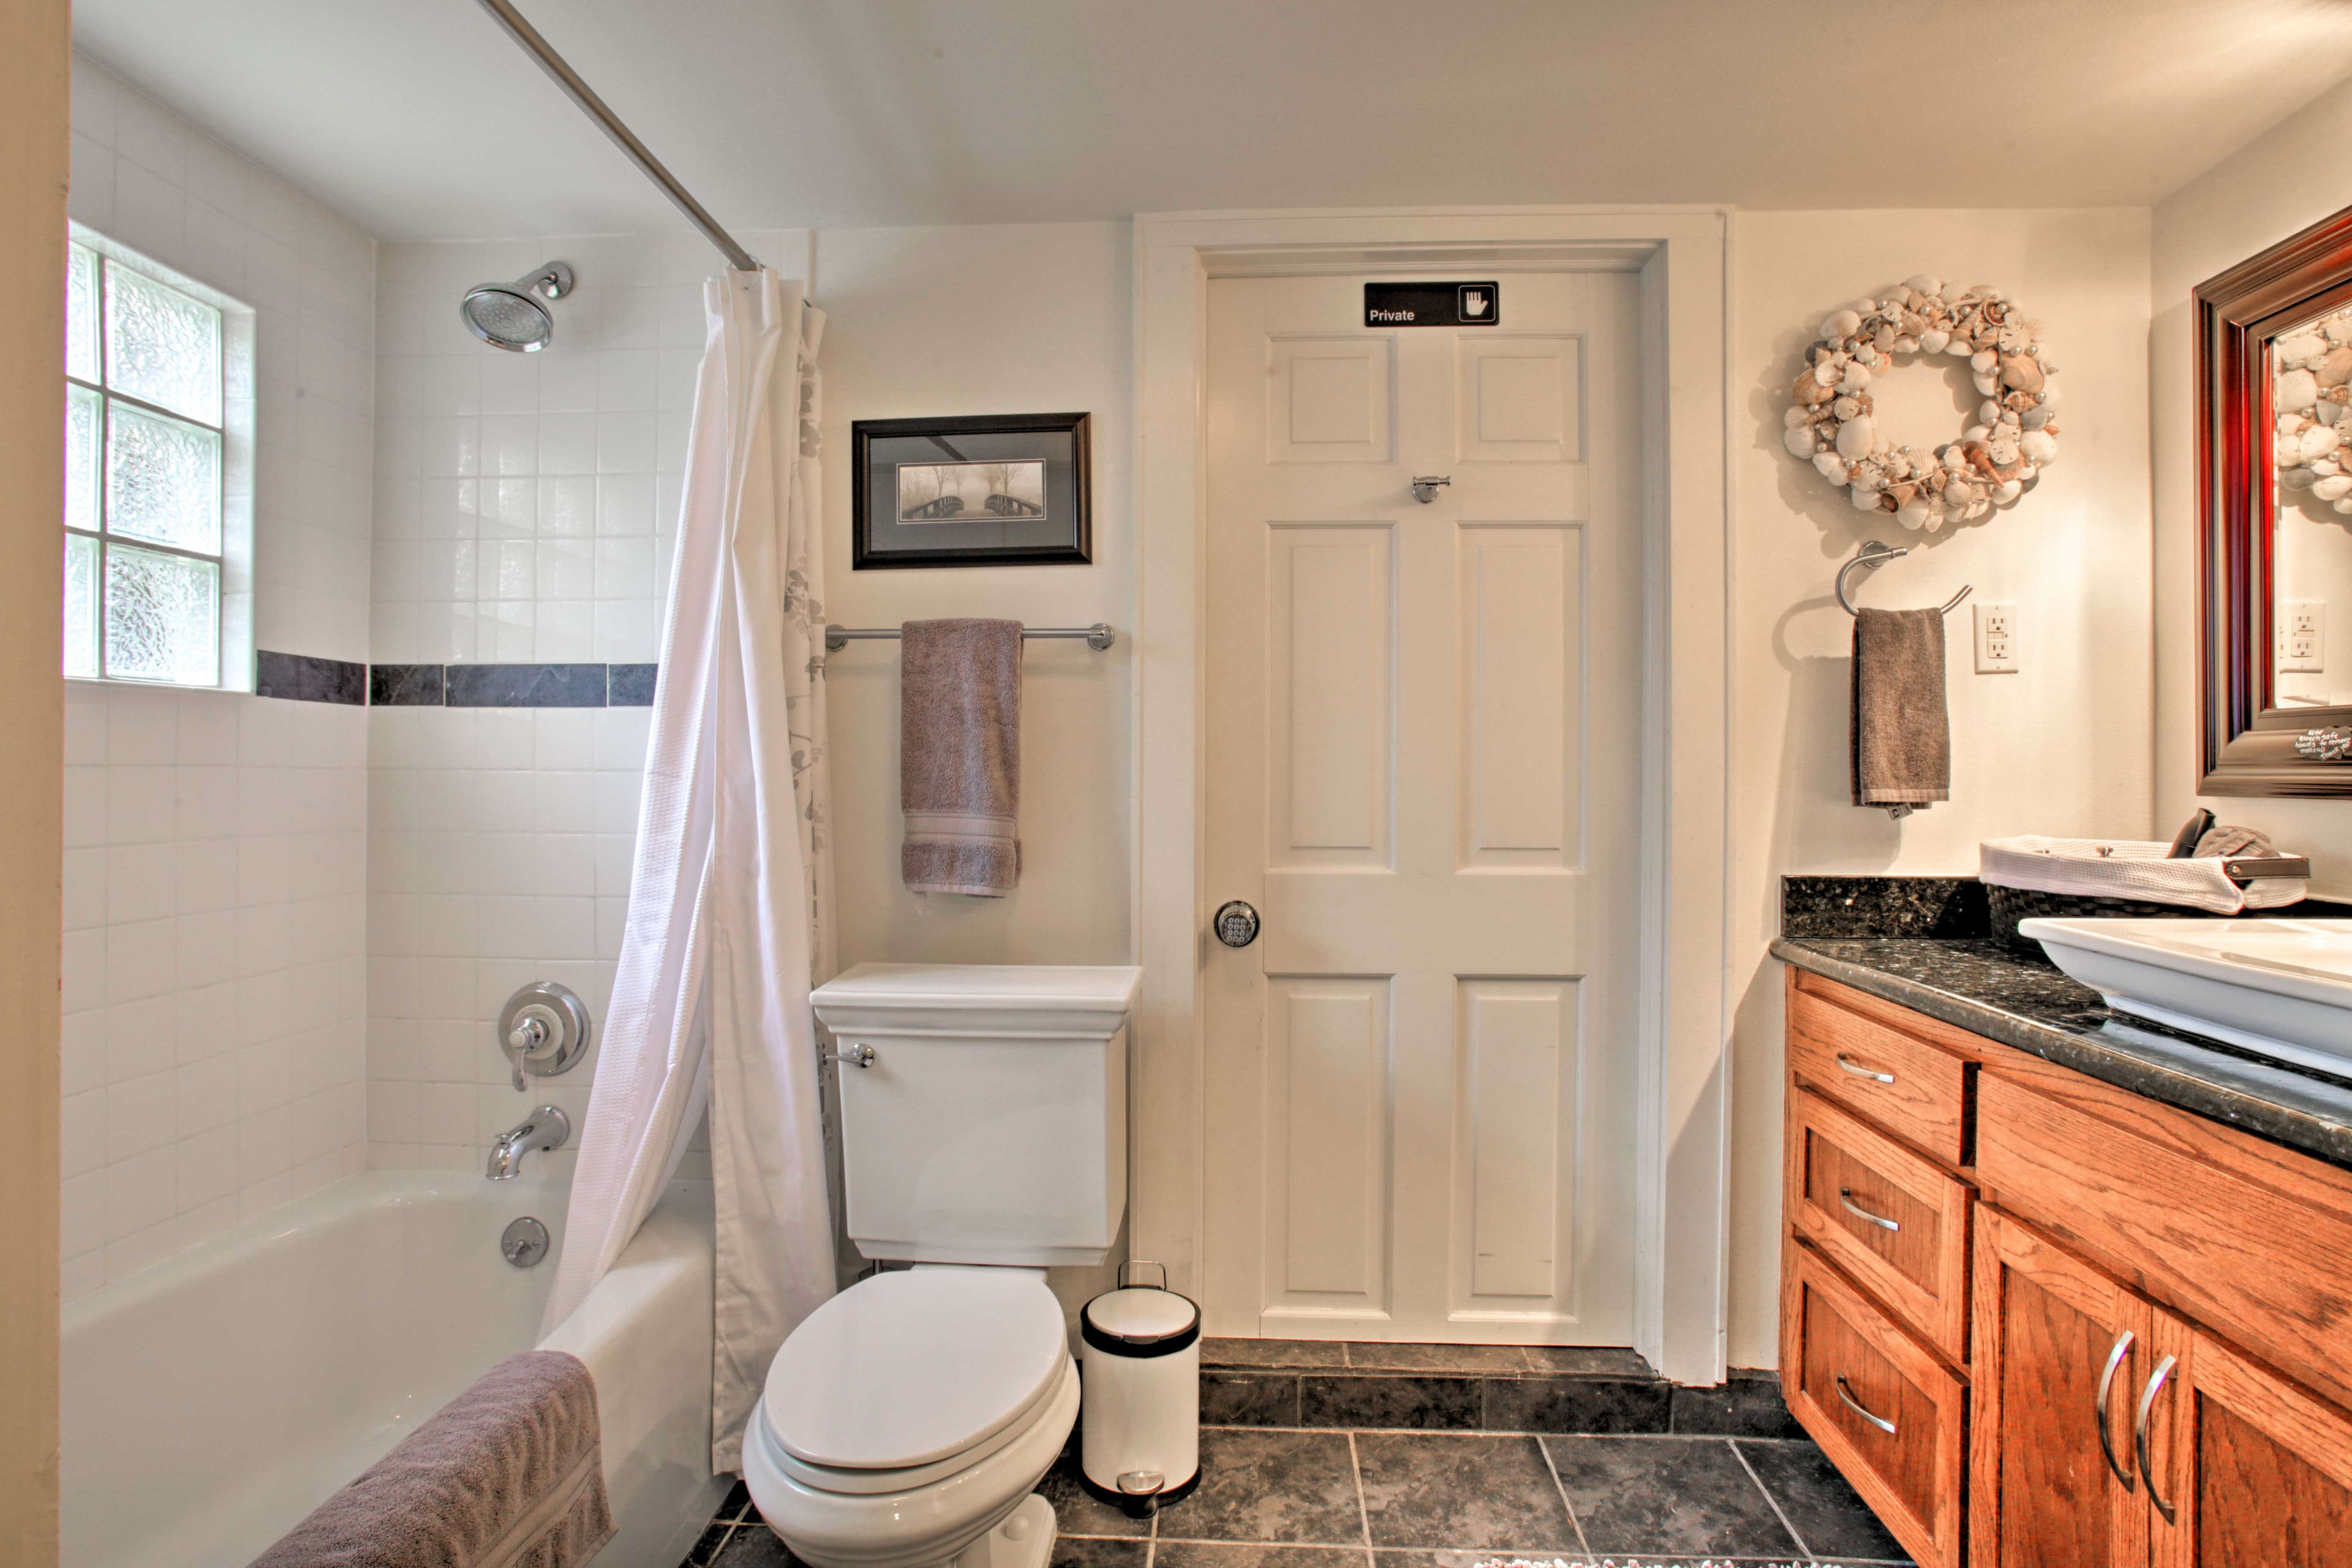 A second full en-suite bathroom gives added privacy.